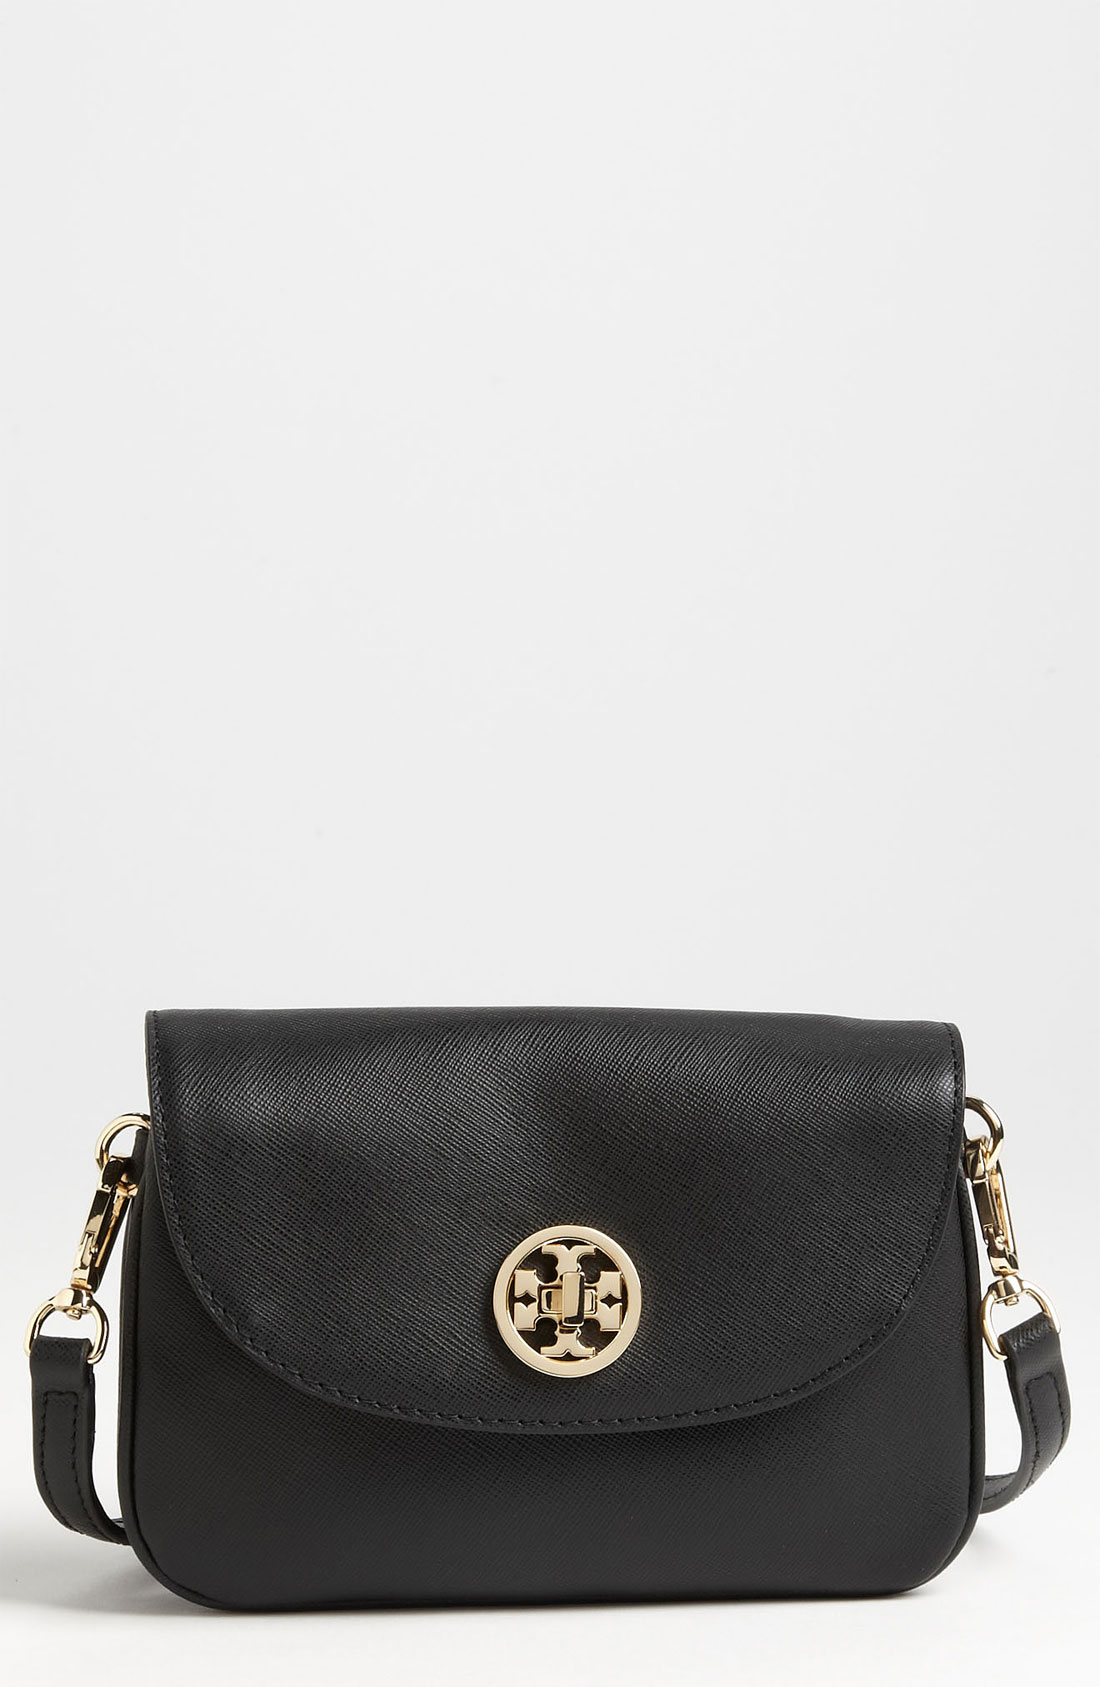 tory burch robinson leather crossbody bag in black